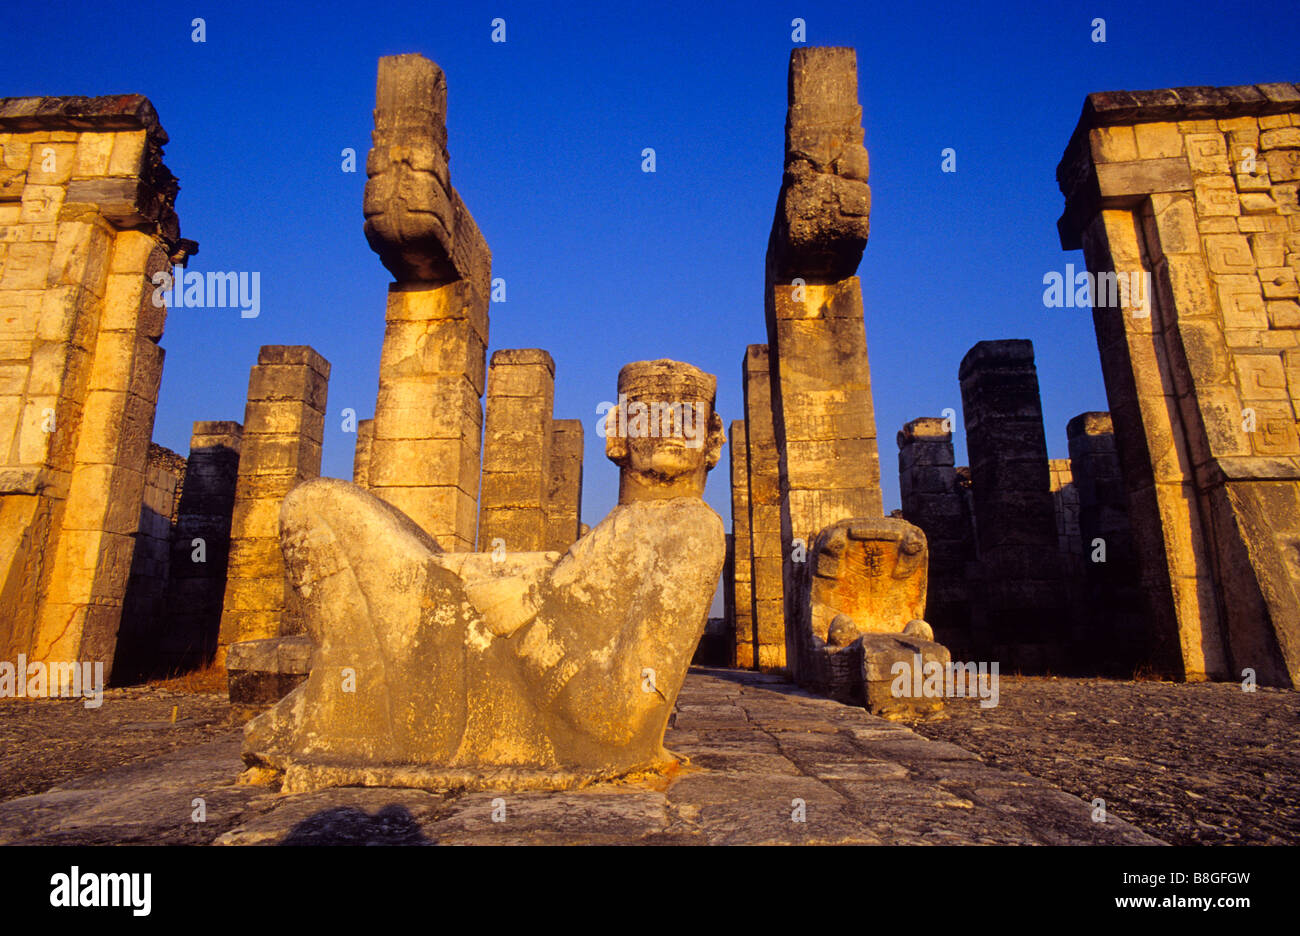 Chac Mool Mayan Rain God statue Temple of the Warriors Chichén Itzá Mexico - Stock Image